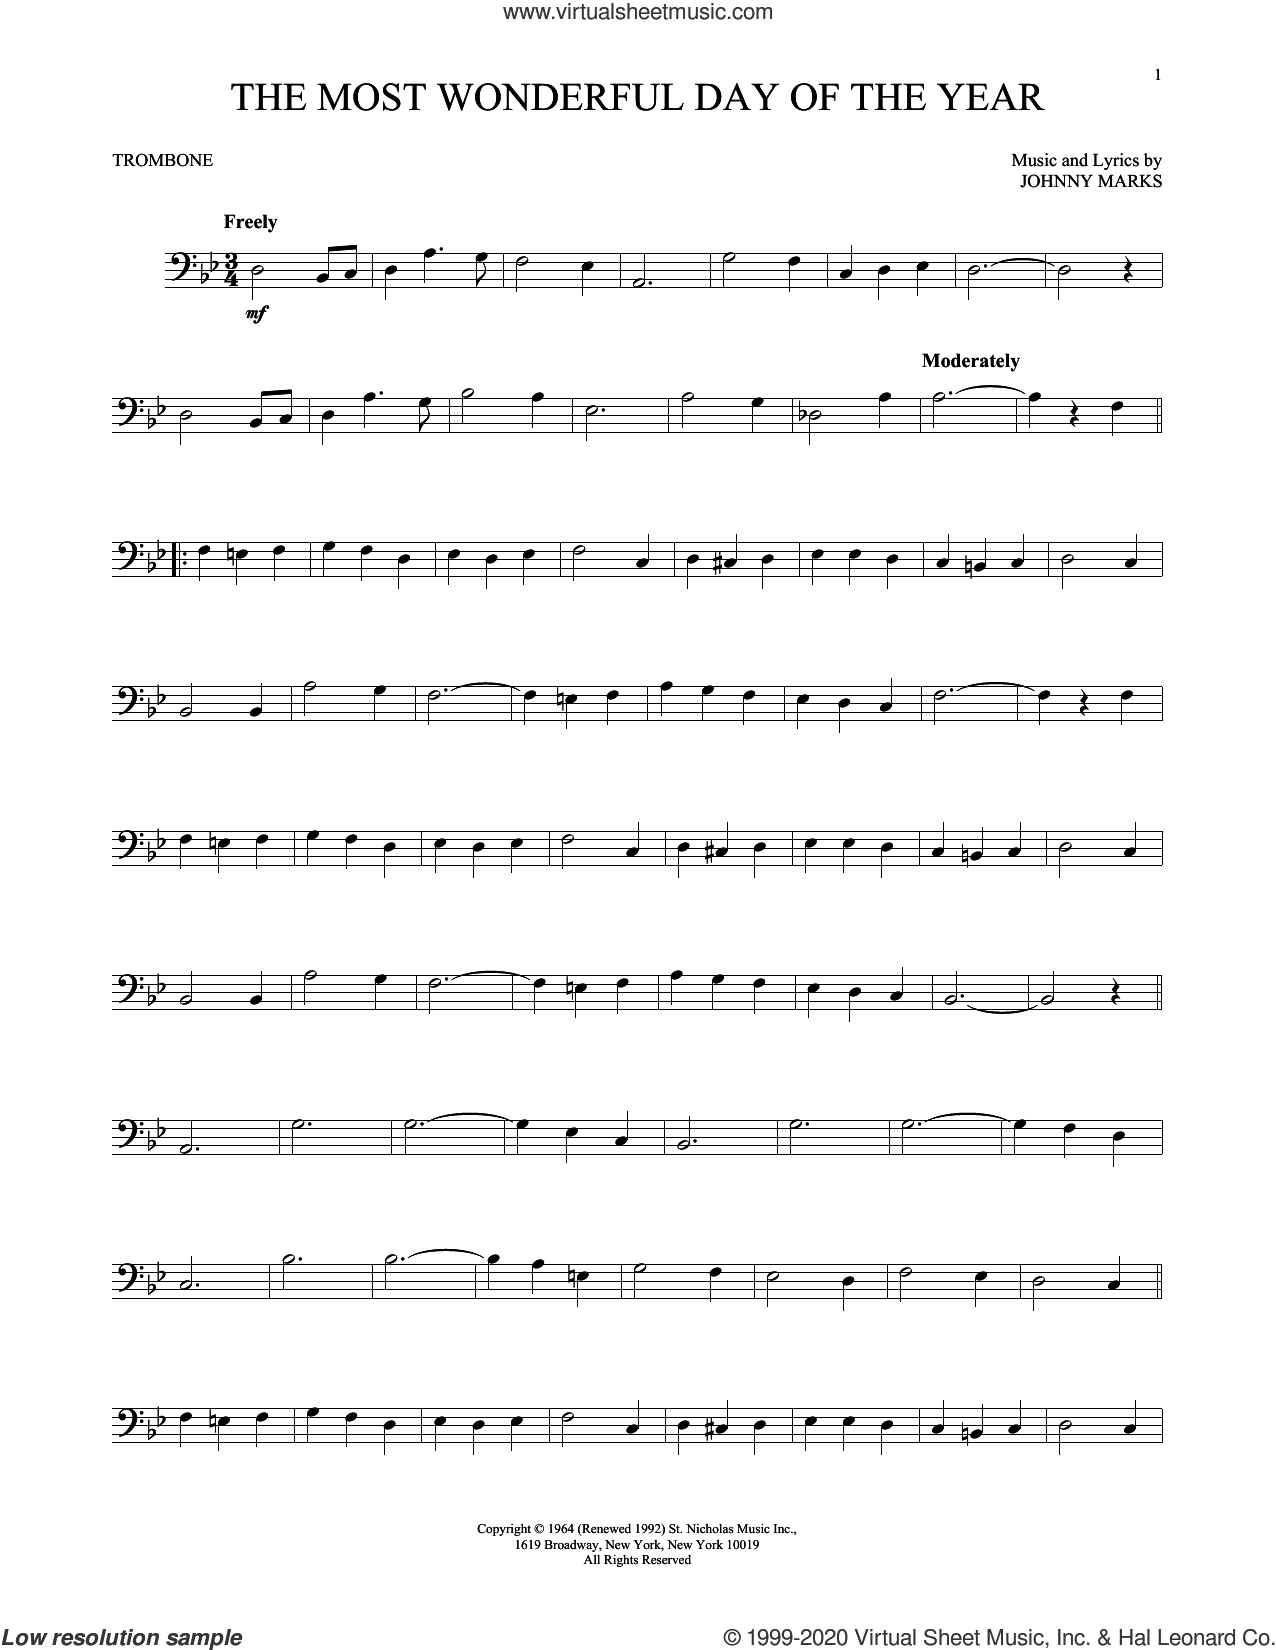 The Most Wonderful Day Of The Year sheet music for trombone solo by Johnny Marks, intermediate skill level